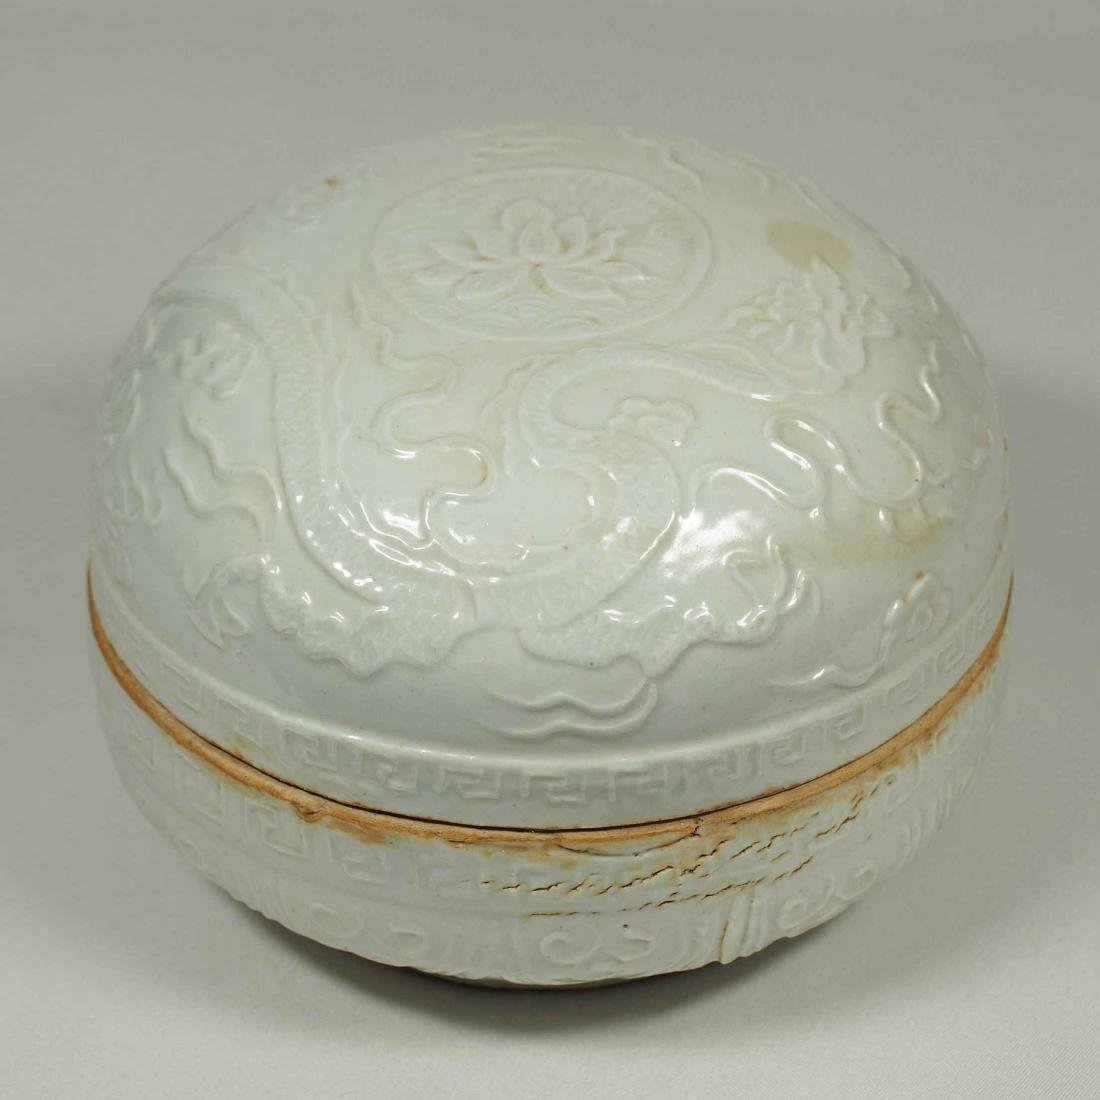 Shufu Box with Moulded Lotus and Dragon, Yuan Dynasty